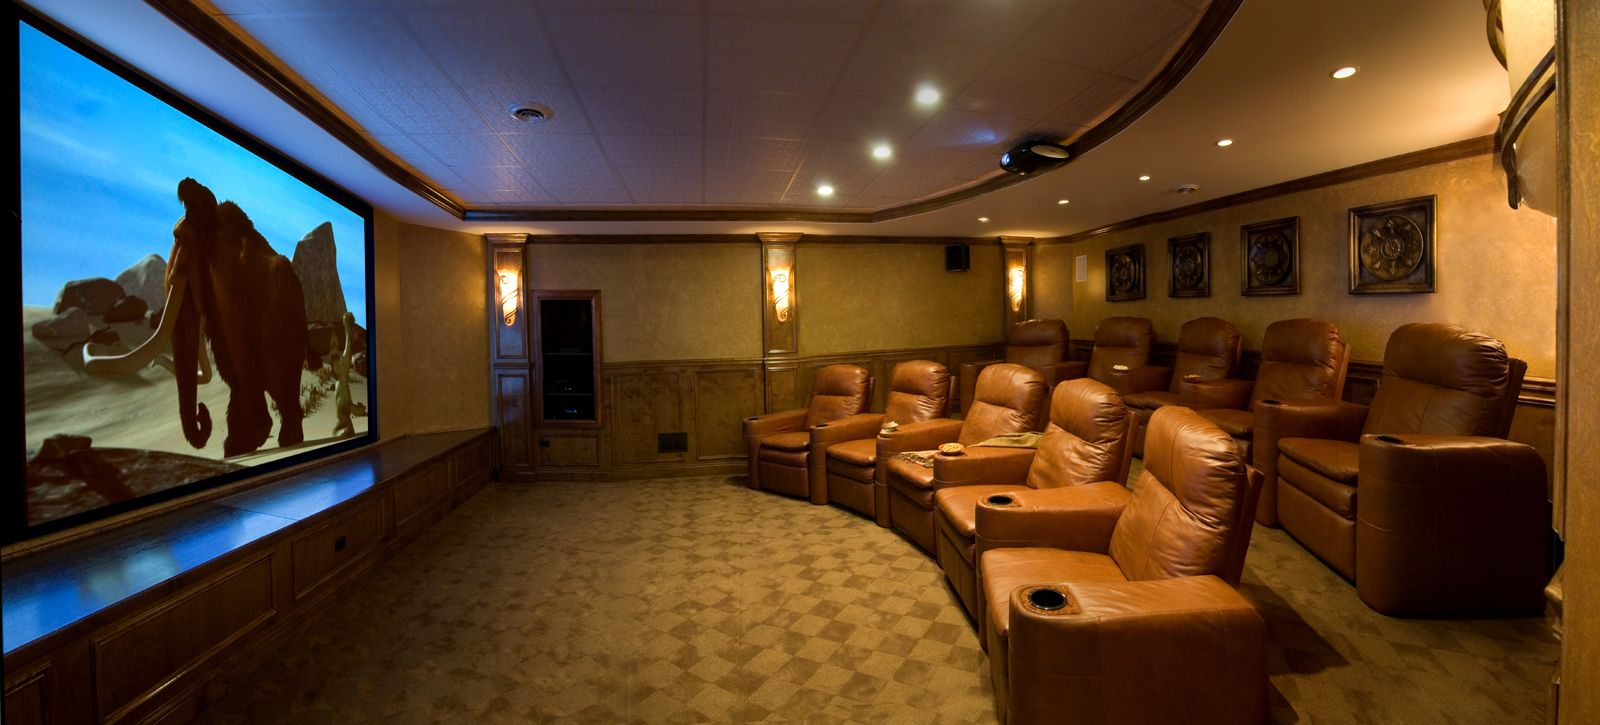 Best Of Basement theater Rooms